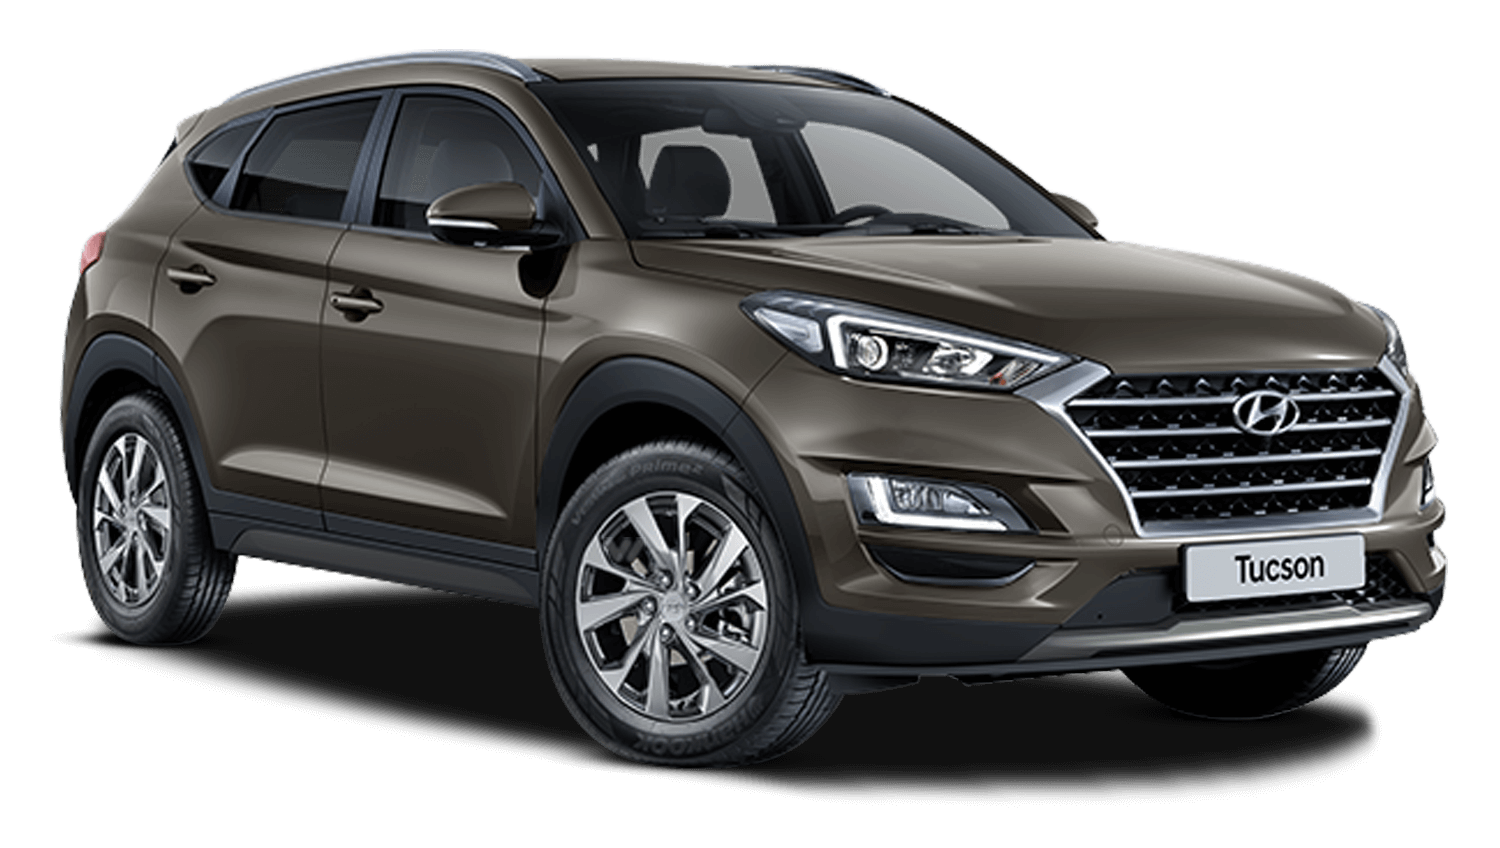 New Tucson Leasing Offers